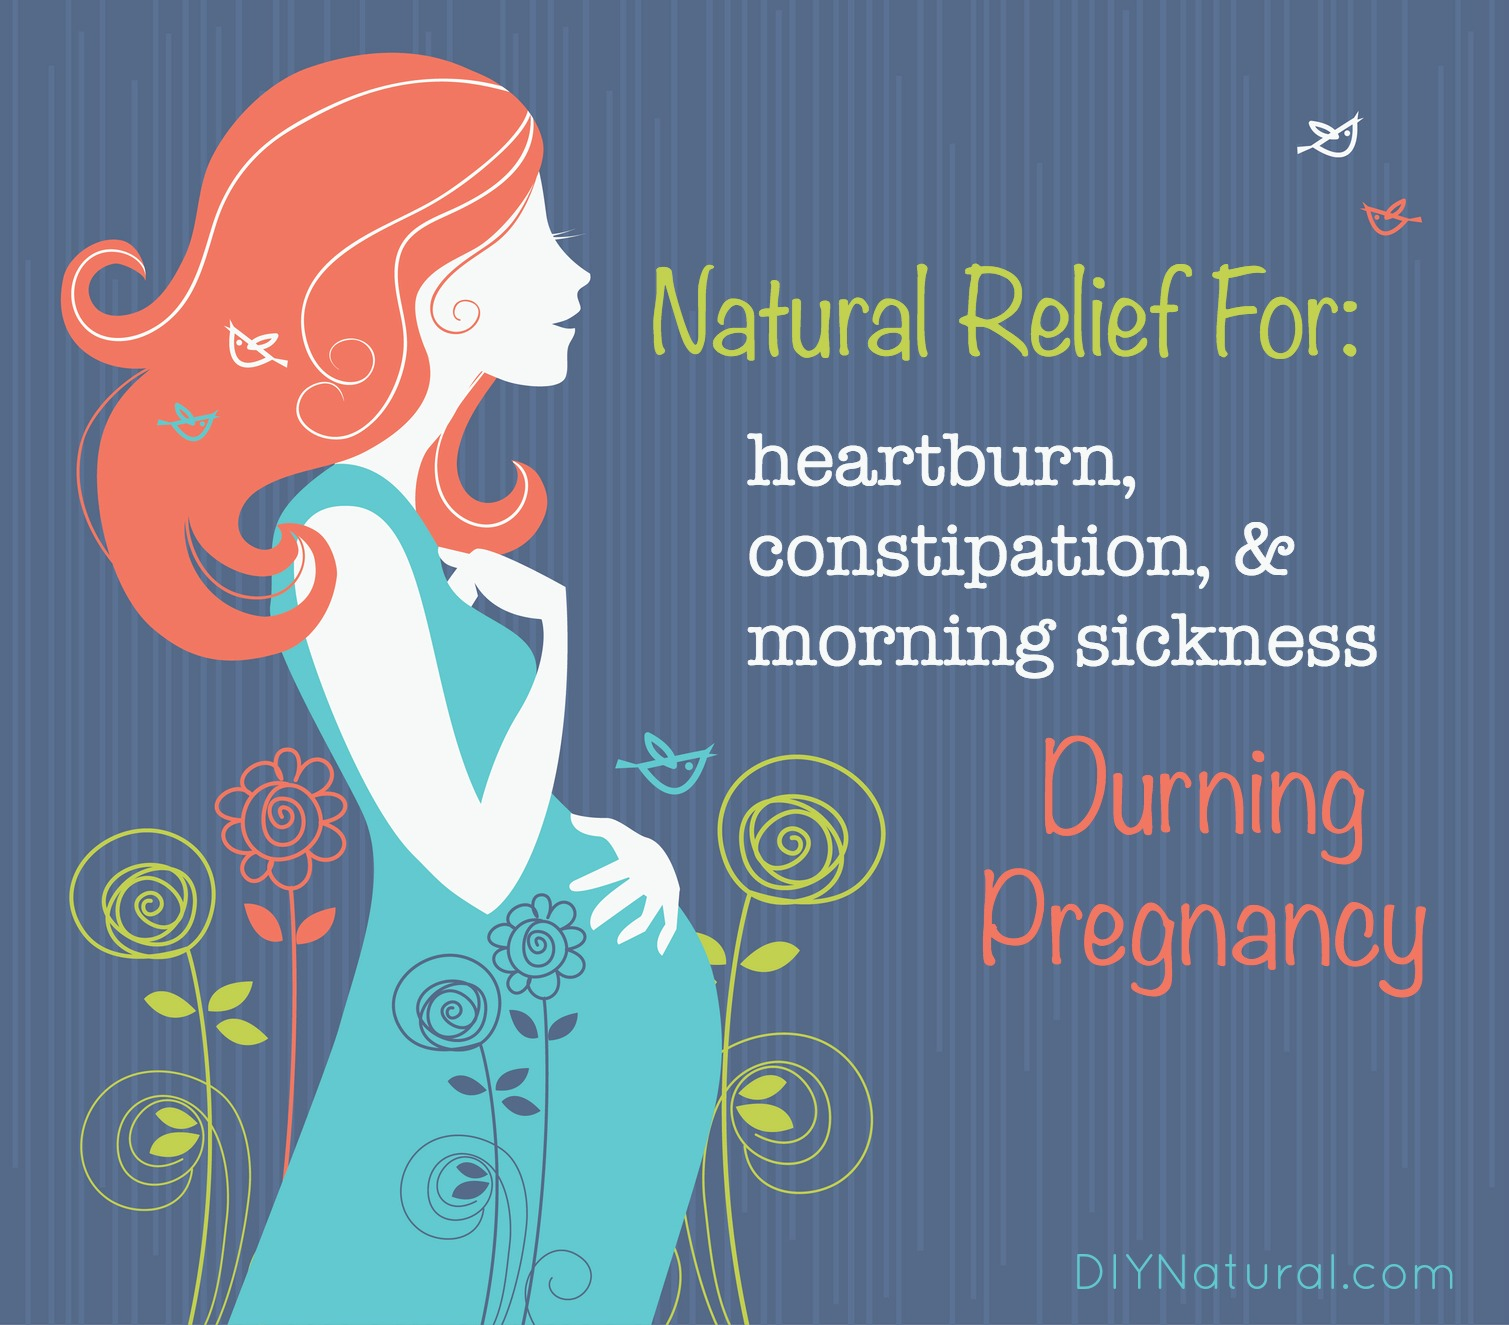 Natural Relief for Constipation & Heartburn During Pregnancy